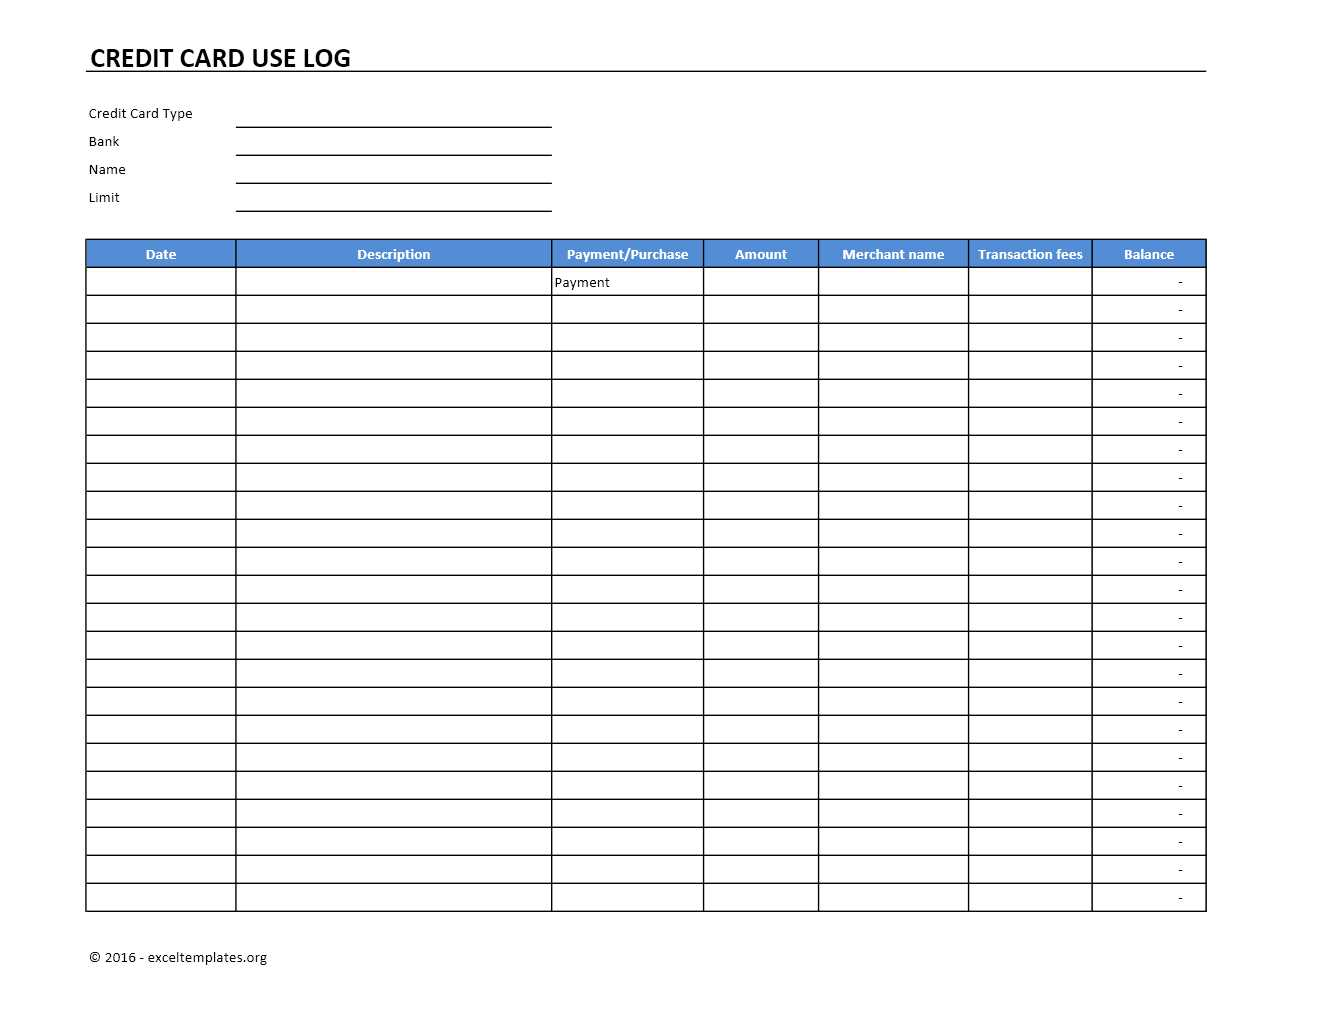 Credit Card Use Log Template Exceltemplates